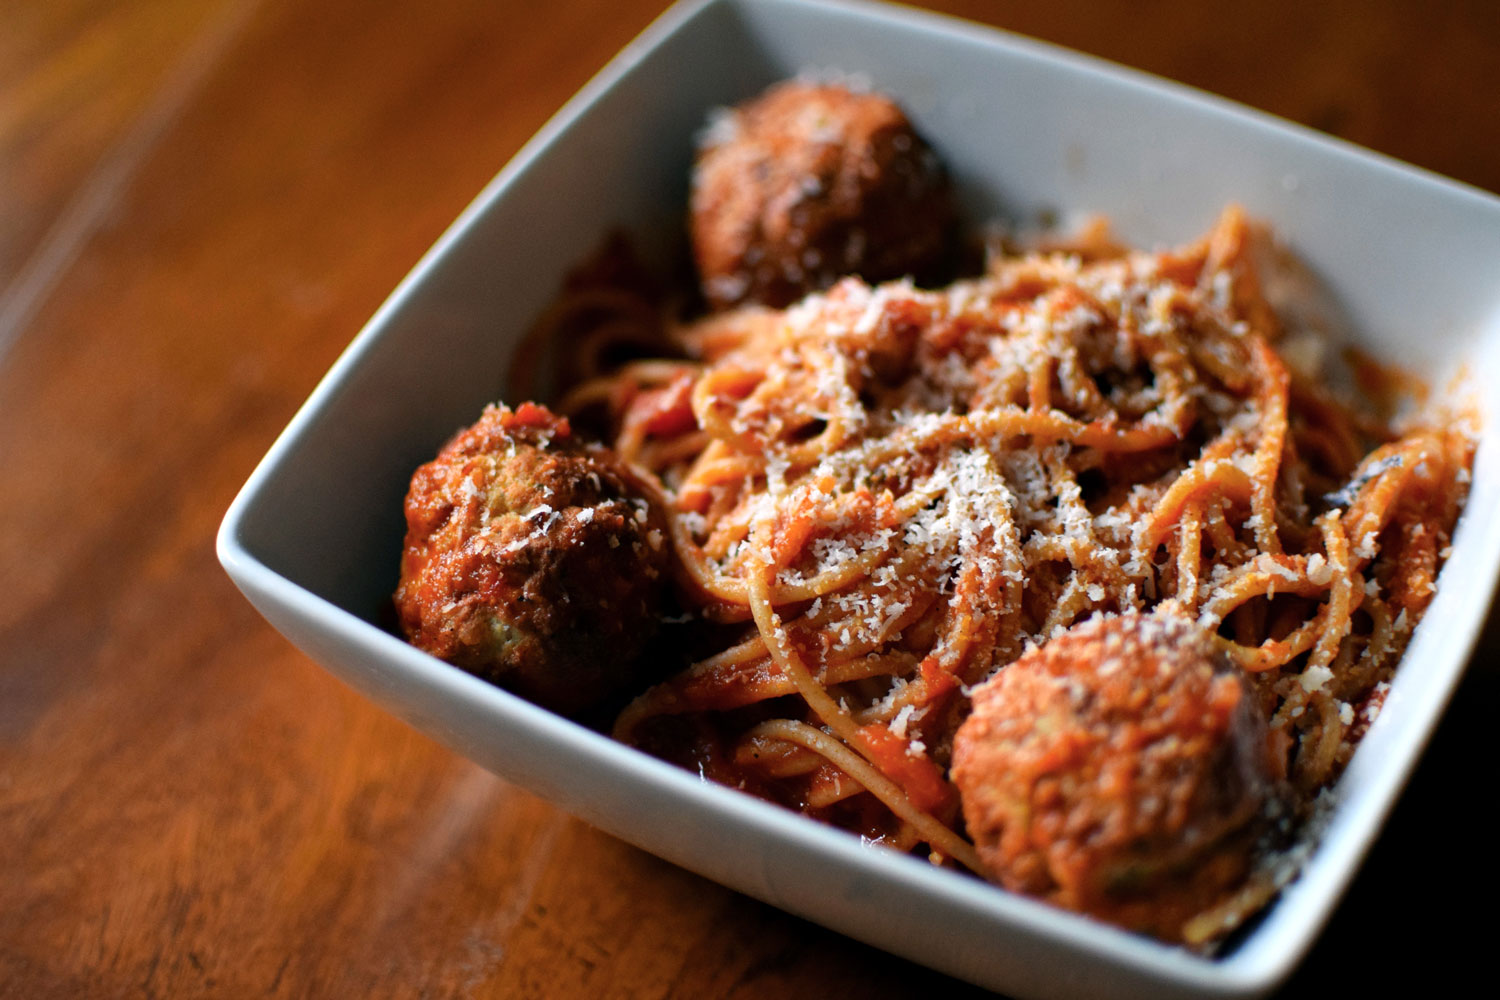 Easiest Pasta and Meatballs. 4 ingredients, 20 minutes. The best weeknight dinner ever!  | themillennialmenu.com